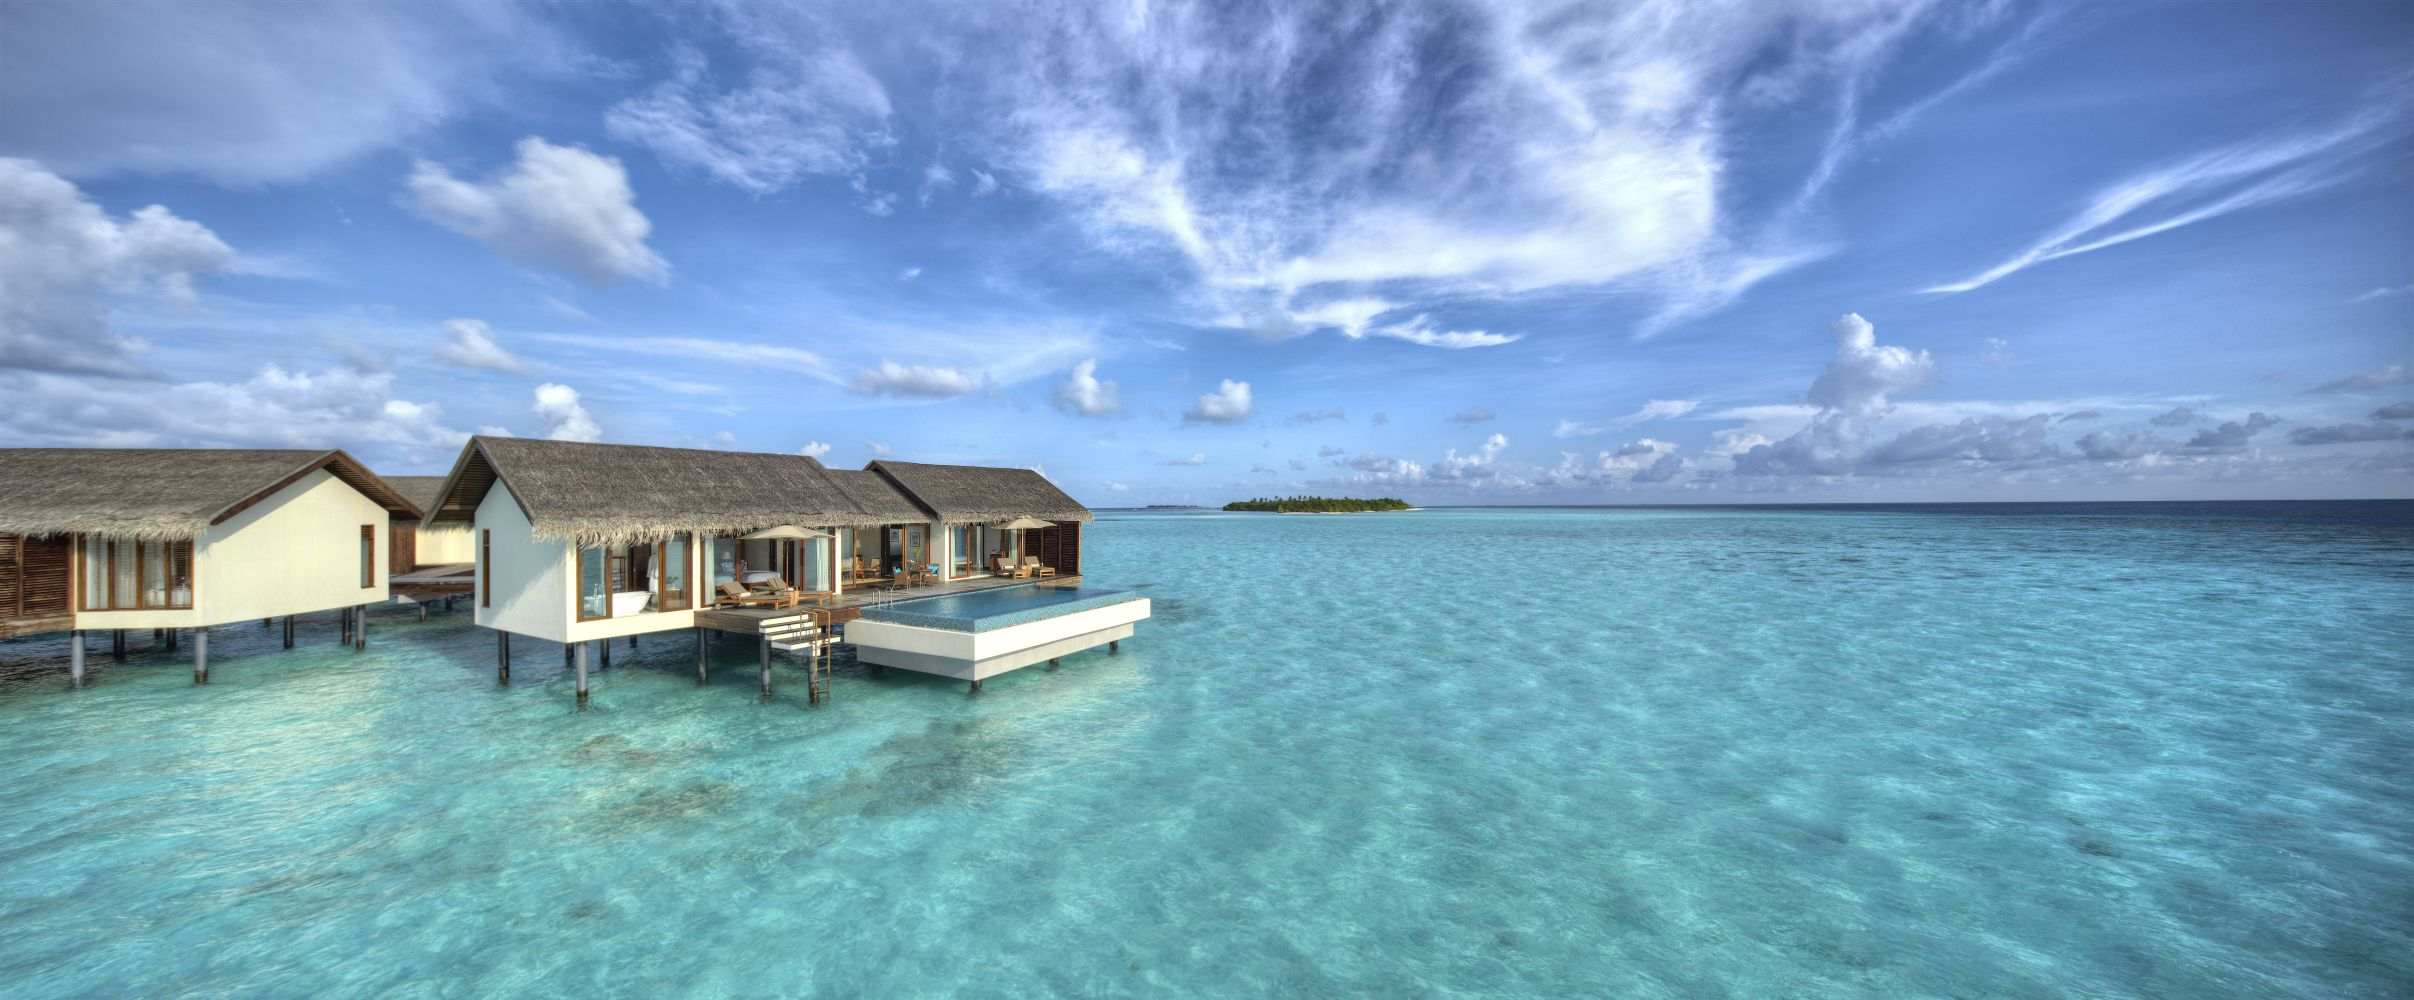 The Residence Maldives 5*, Two Bedroom Water Pool Villa